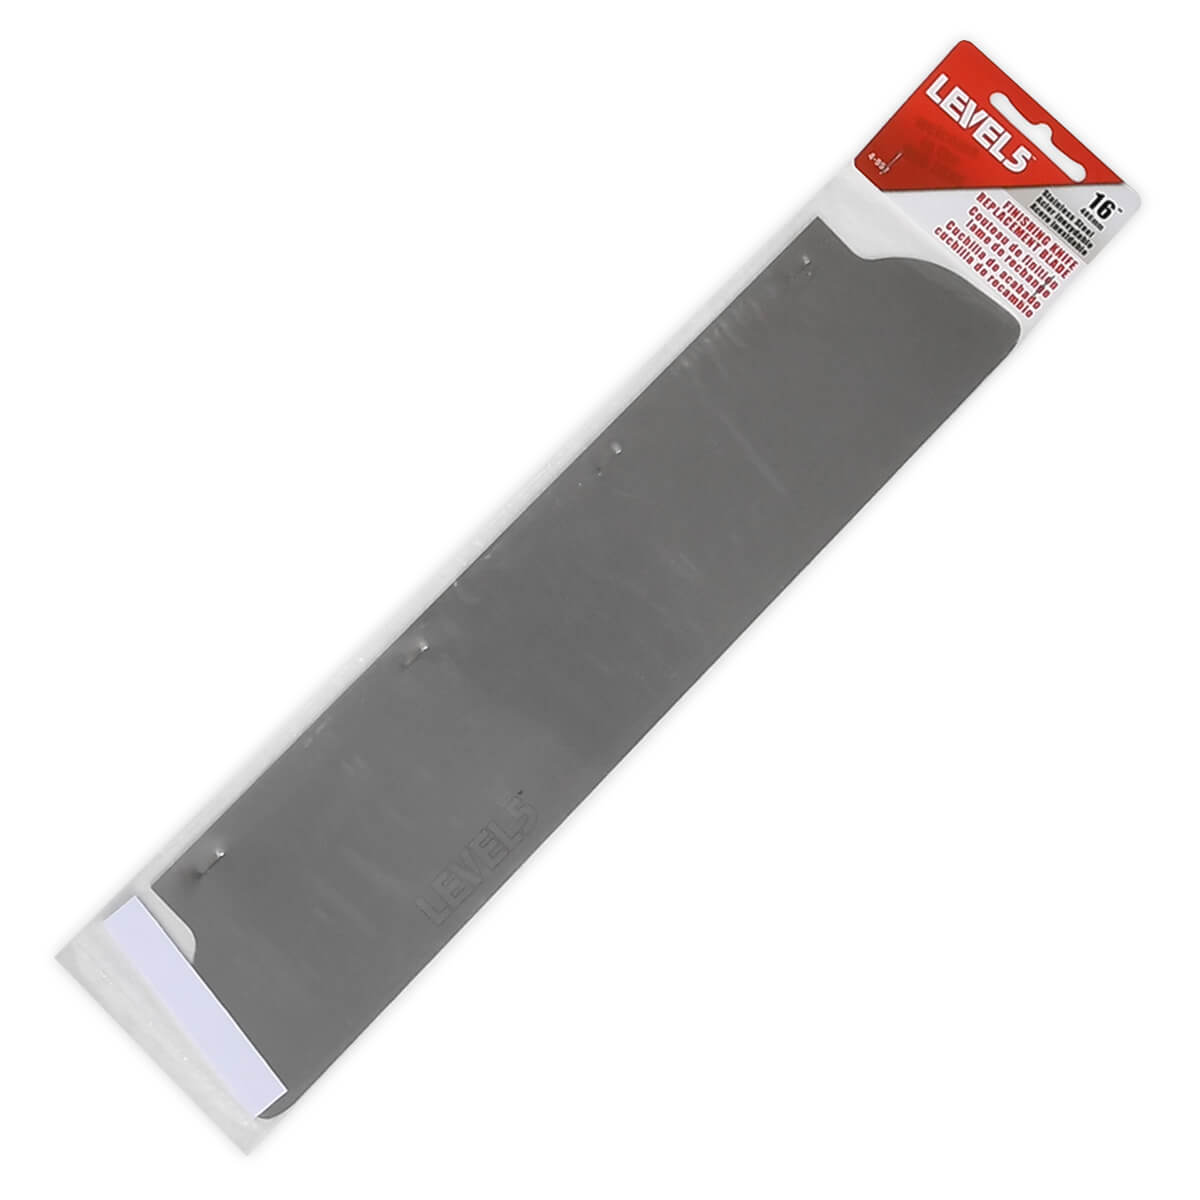 LEVEL5 16-Inch Drywall Skimming Blade Insert | 4-952